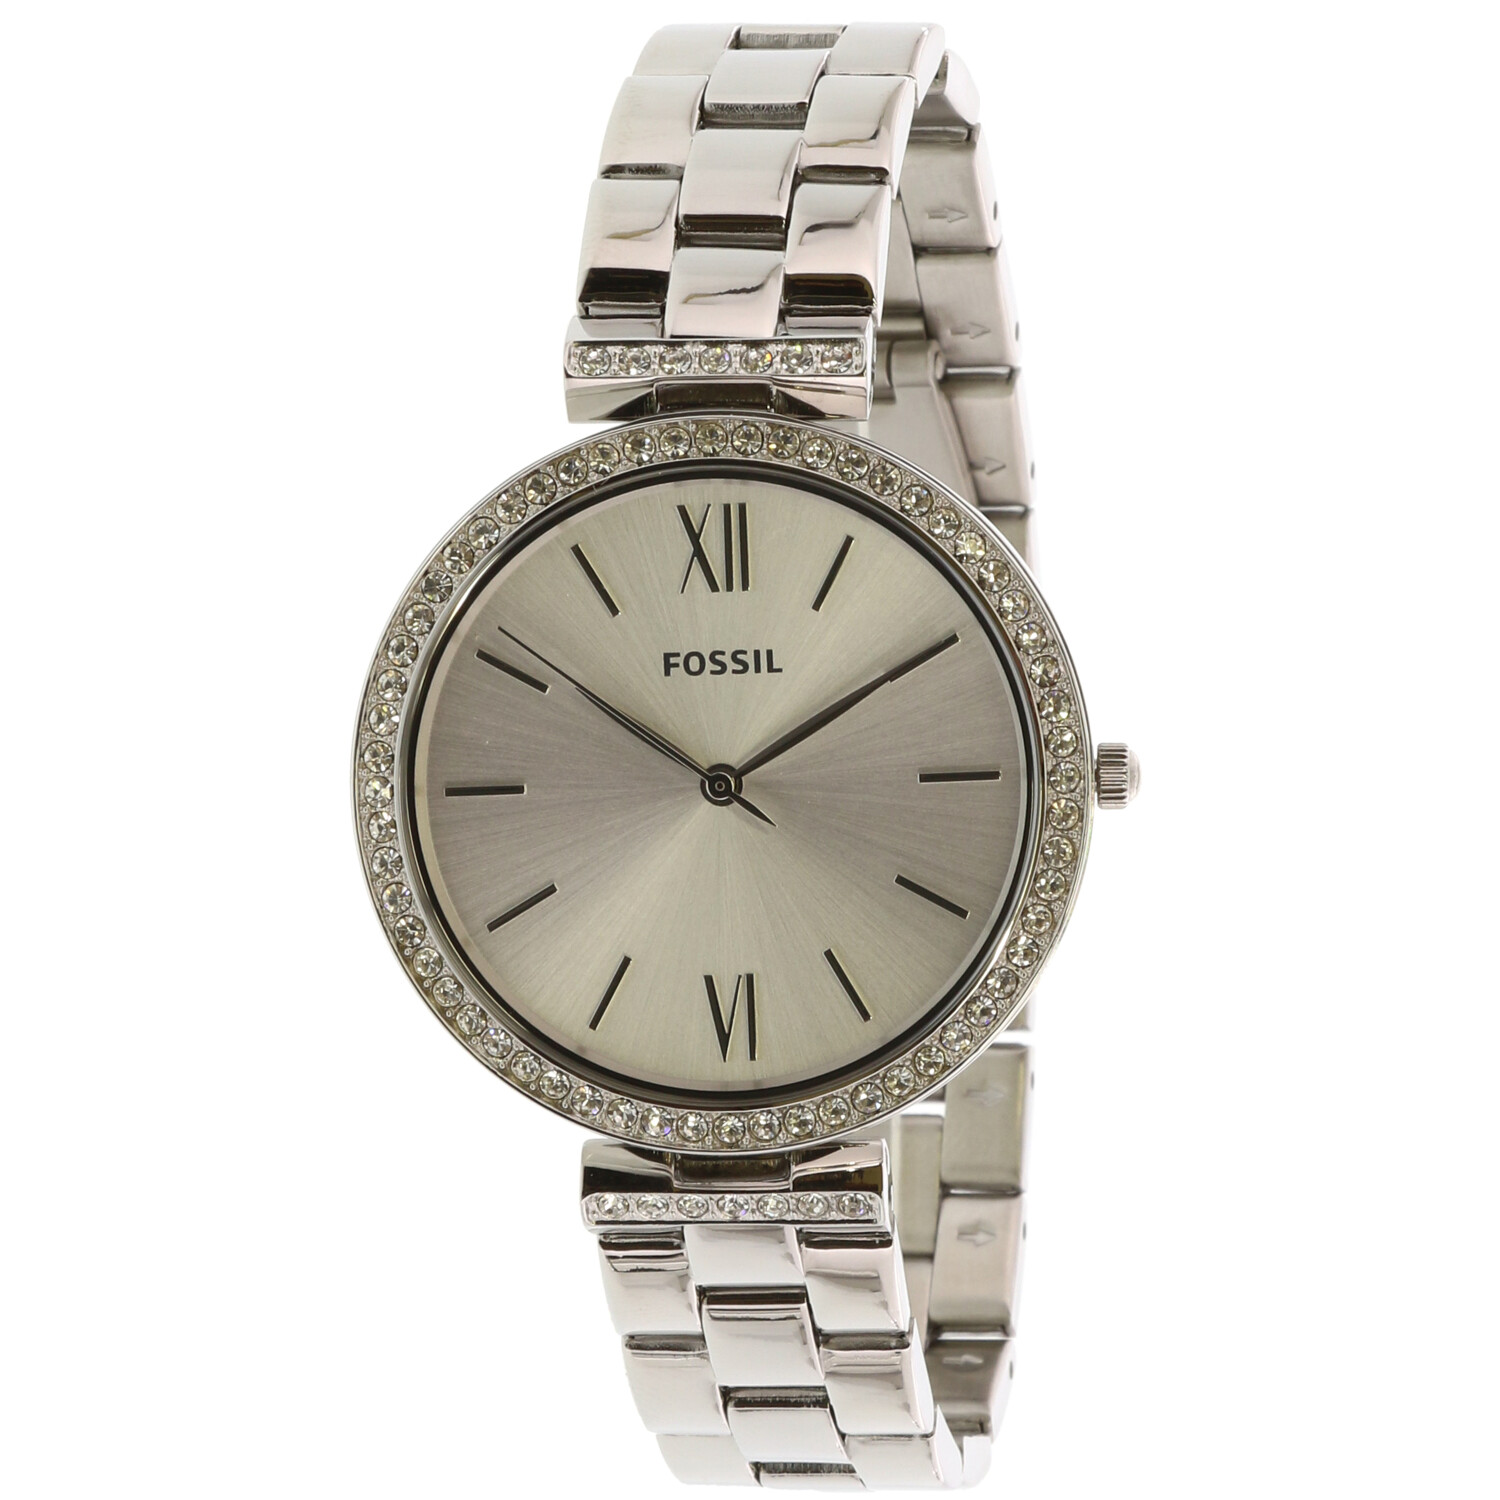 Fossil Women's ES4539 Madeline Three-Hand Silver Stainless Steel Dress Watch